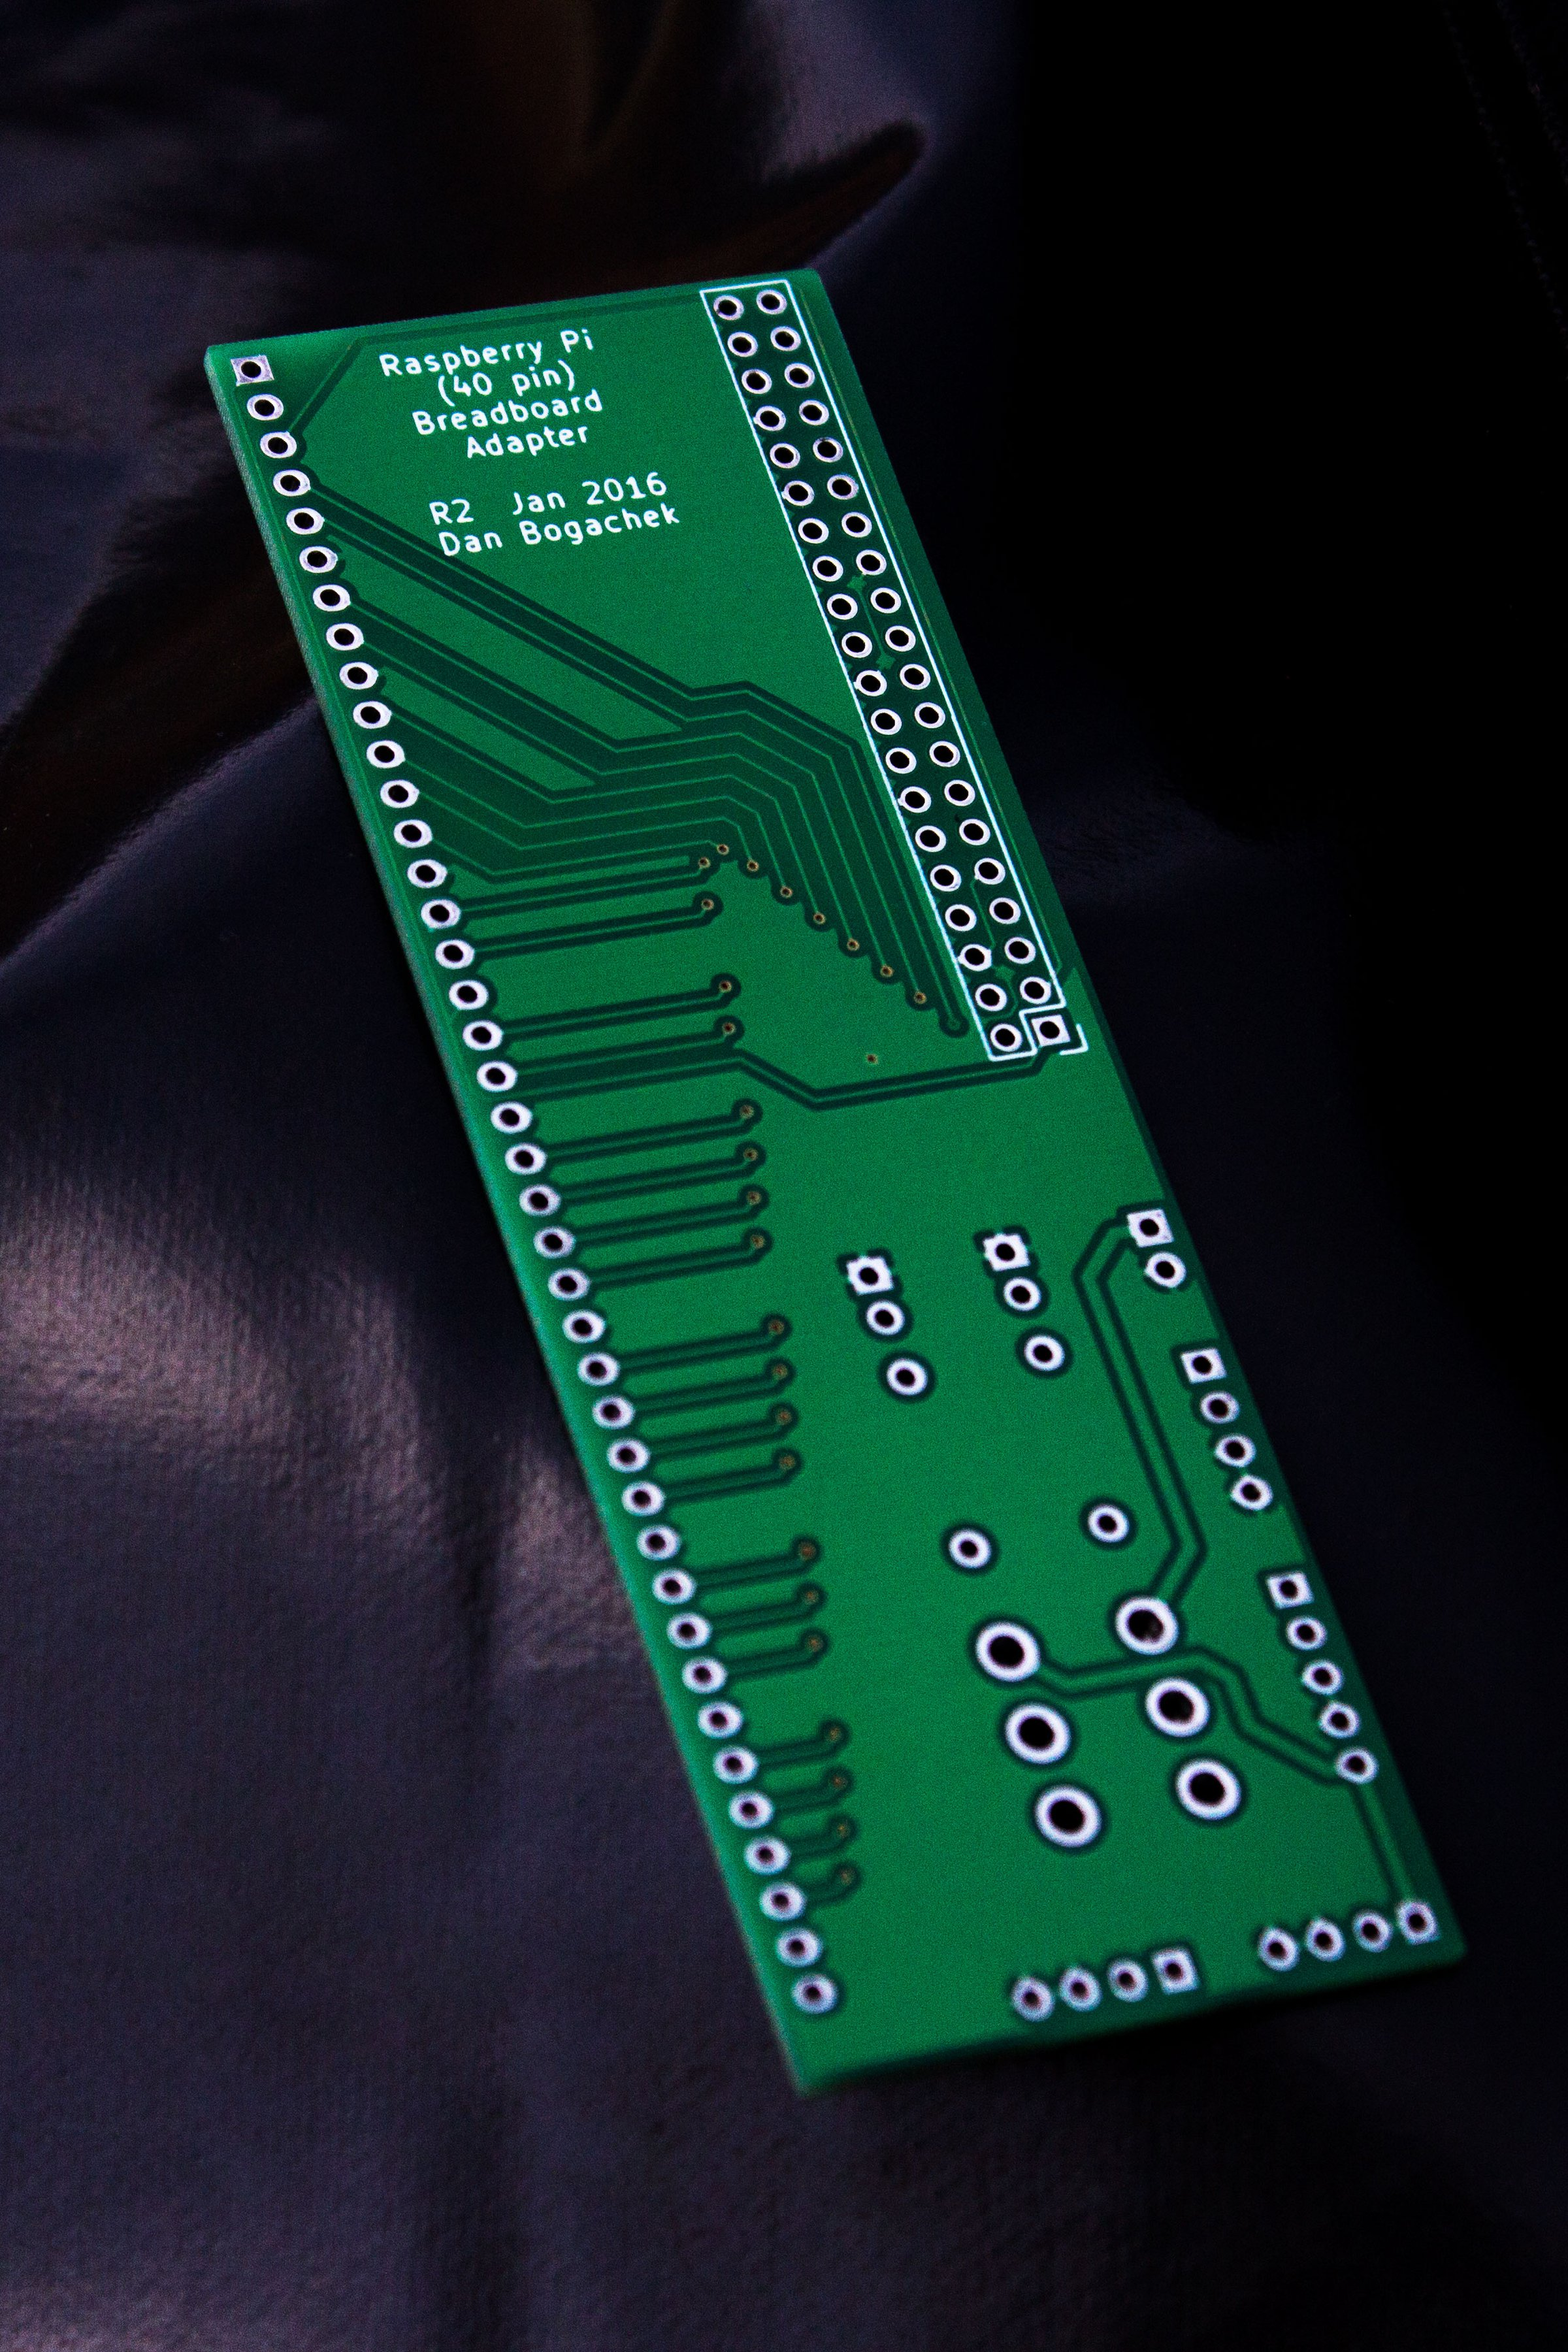 Raspberry Pi 40 Pin Breadboard Adapter From Bogasaur On Tindie Details About Pcb Printed Circuit Board Intermediate Kit 3